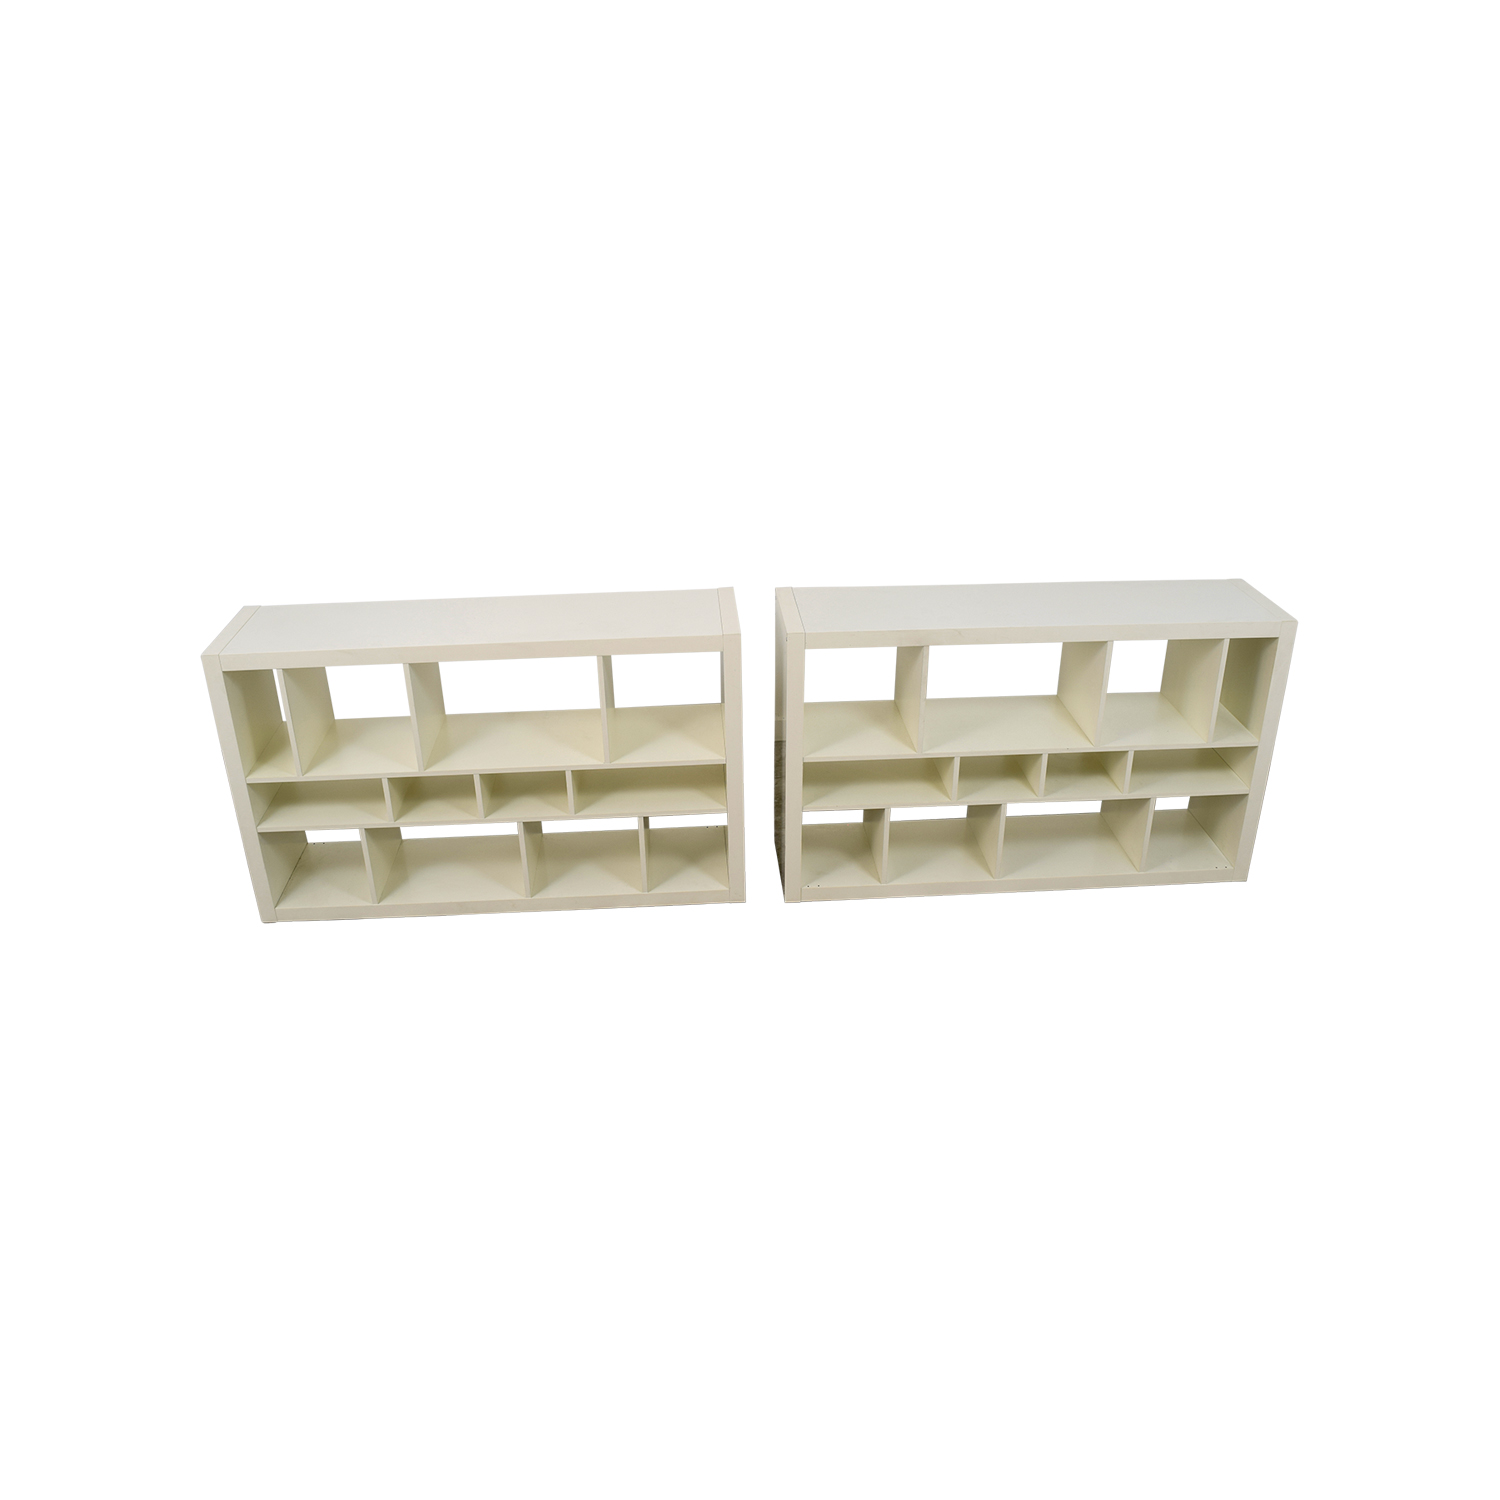 additional shelf d wire si htm white w shelves shelving p with photos five chrome unit x